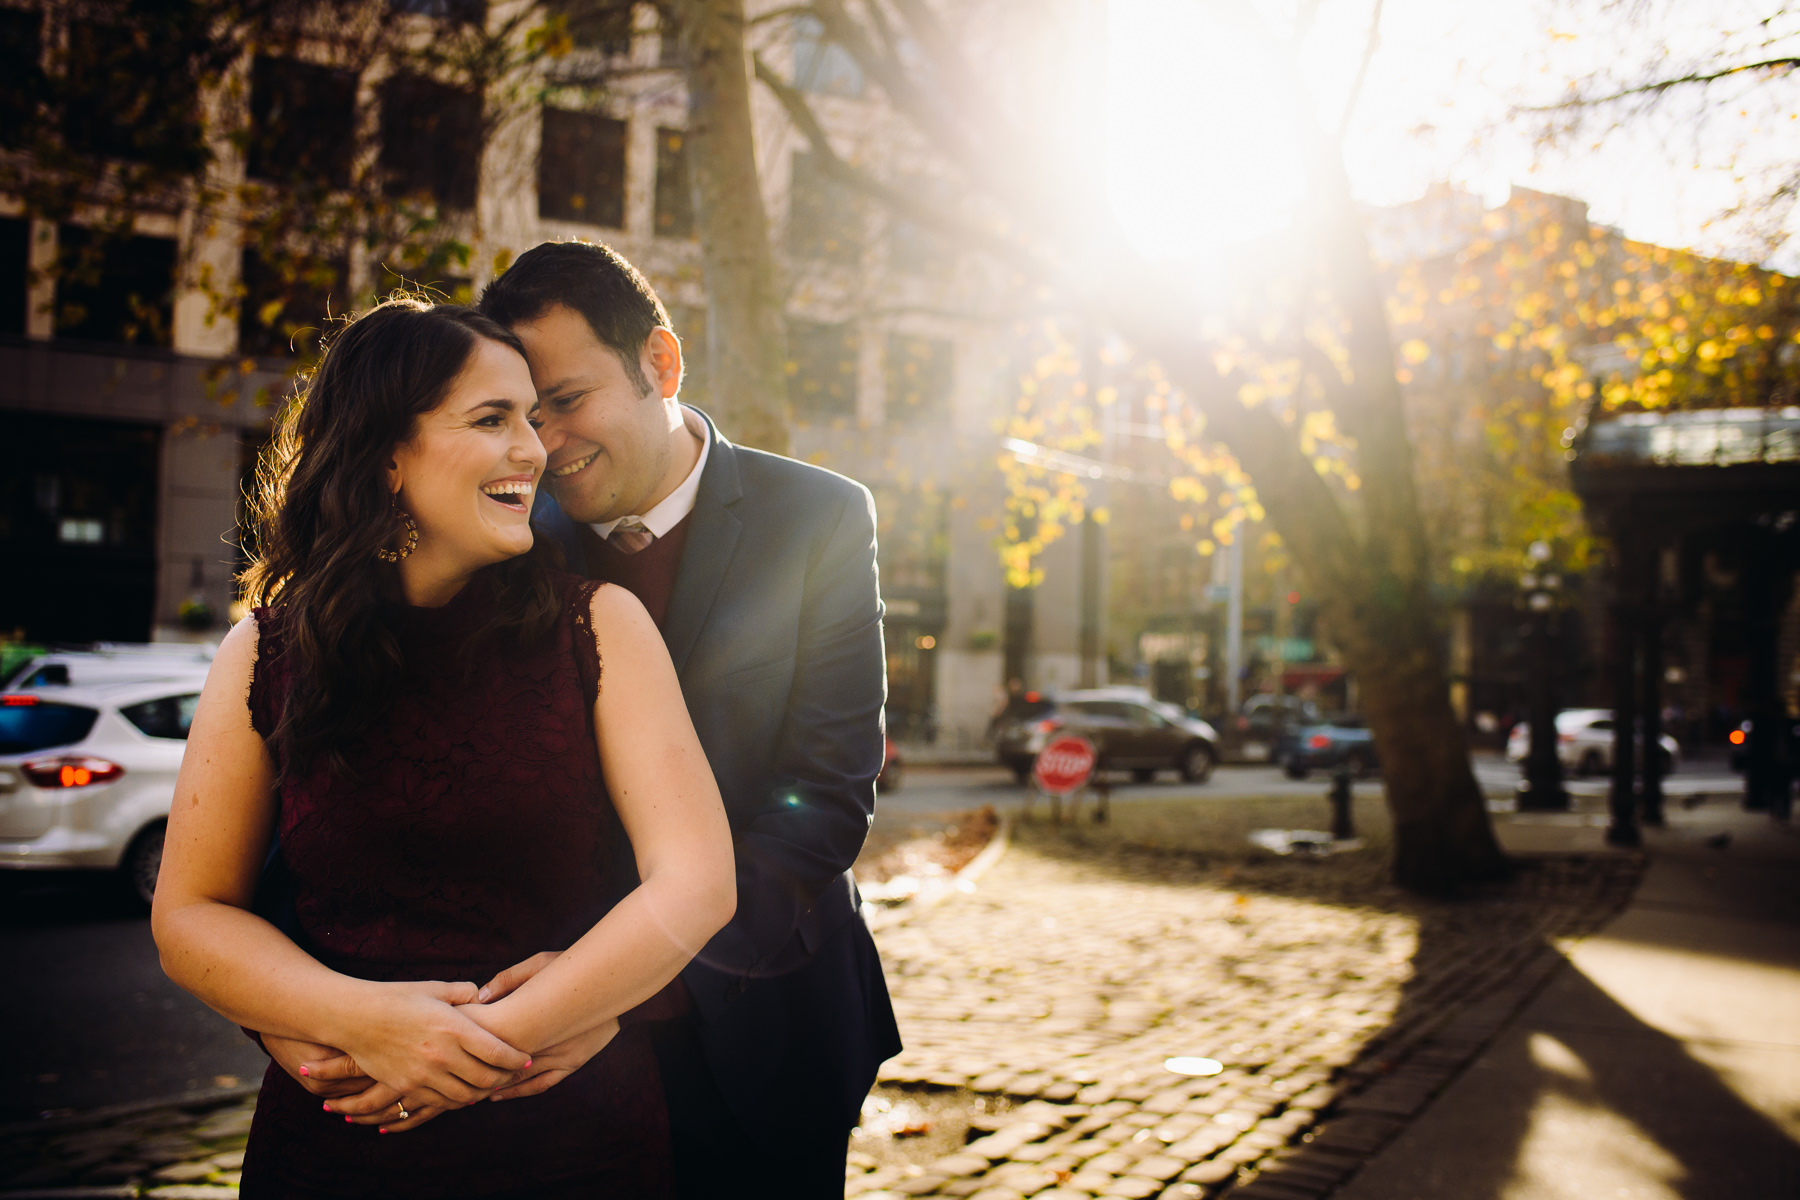 pioneer square laughing wedding photos